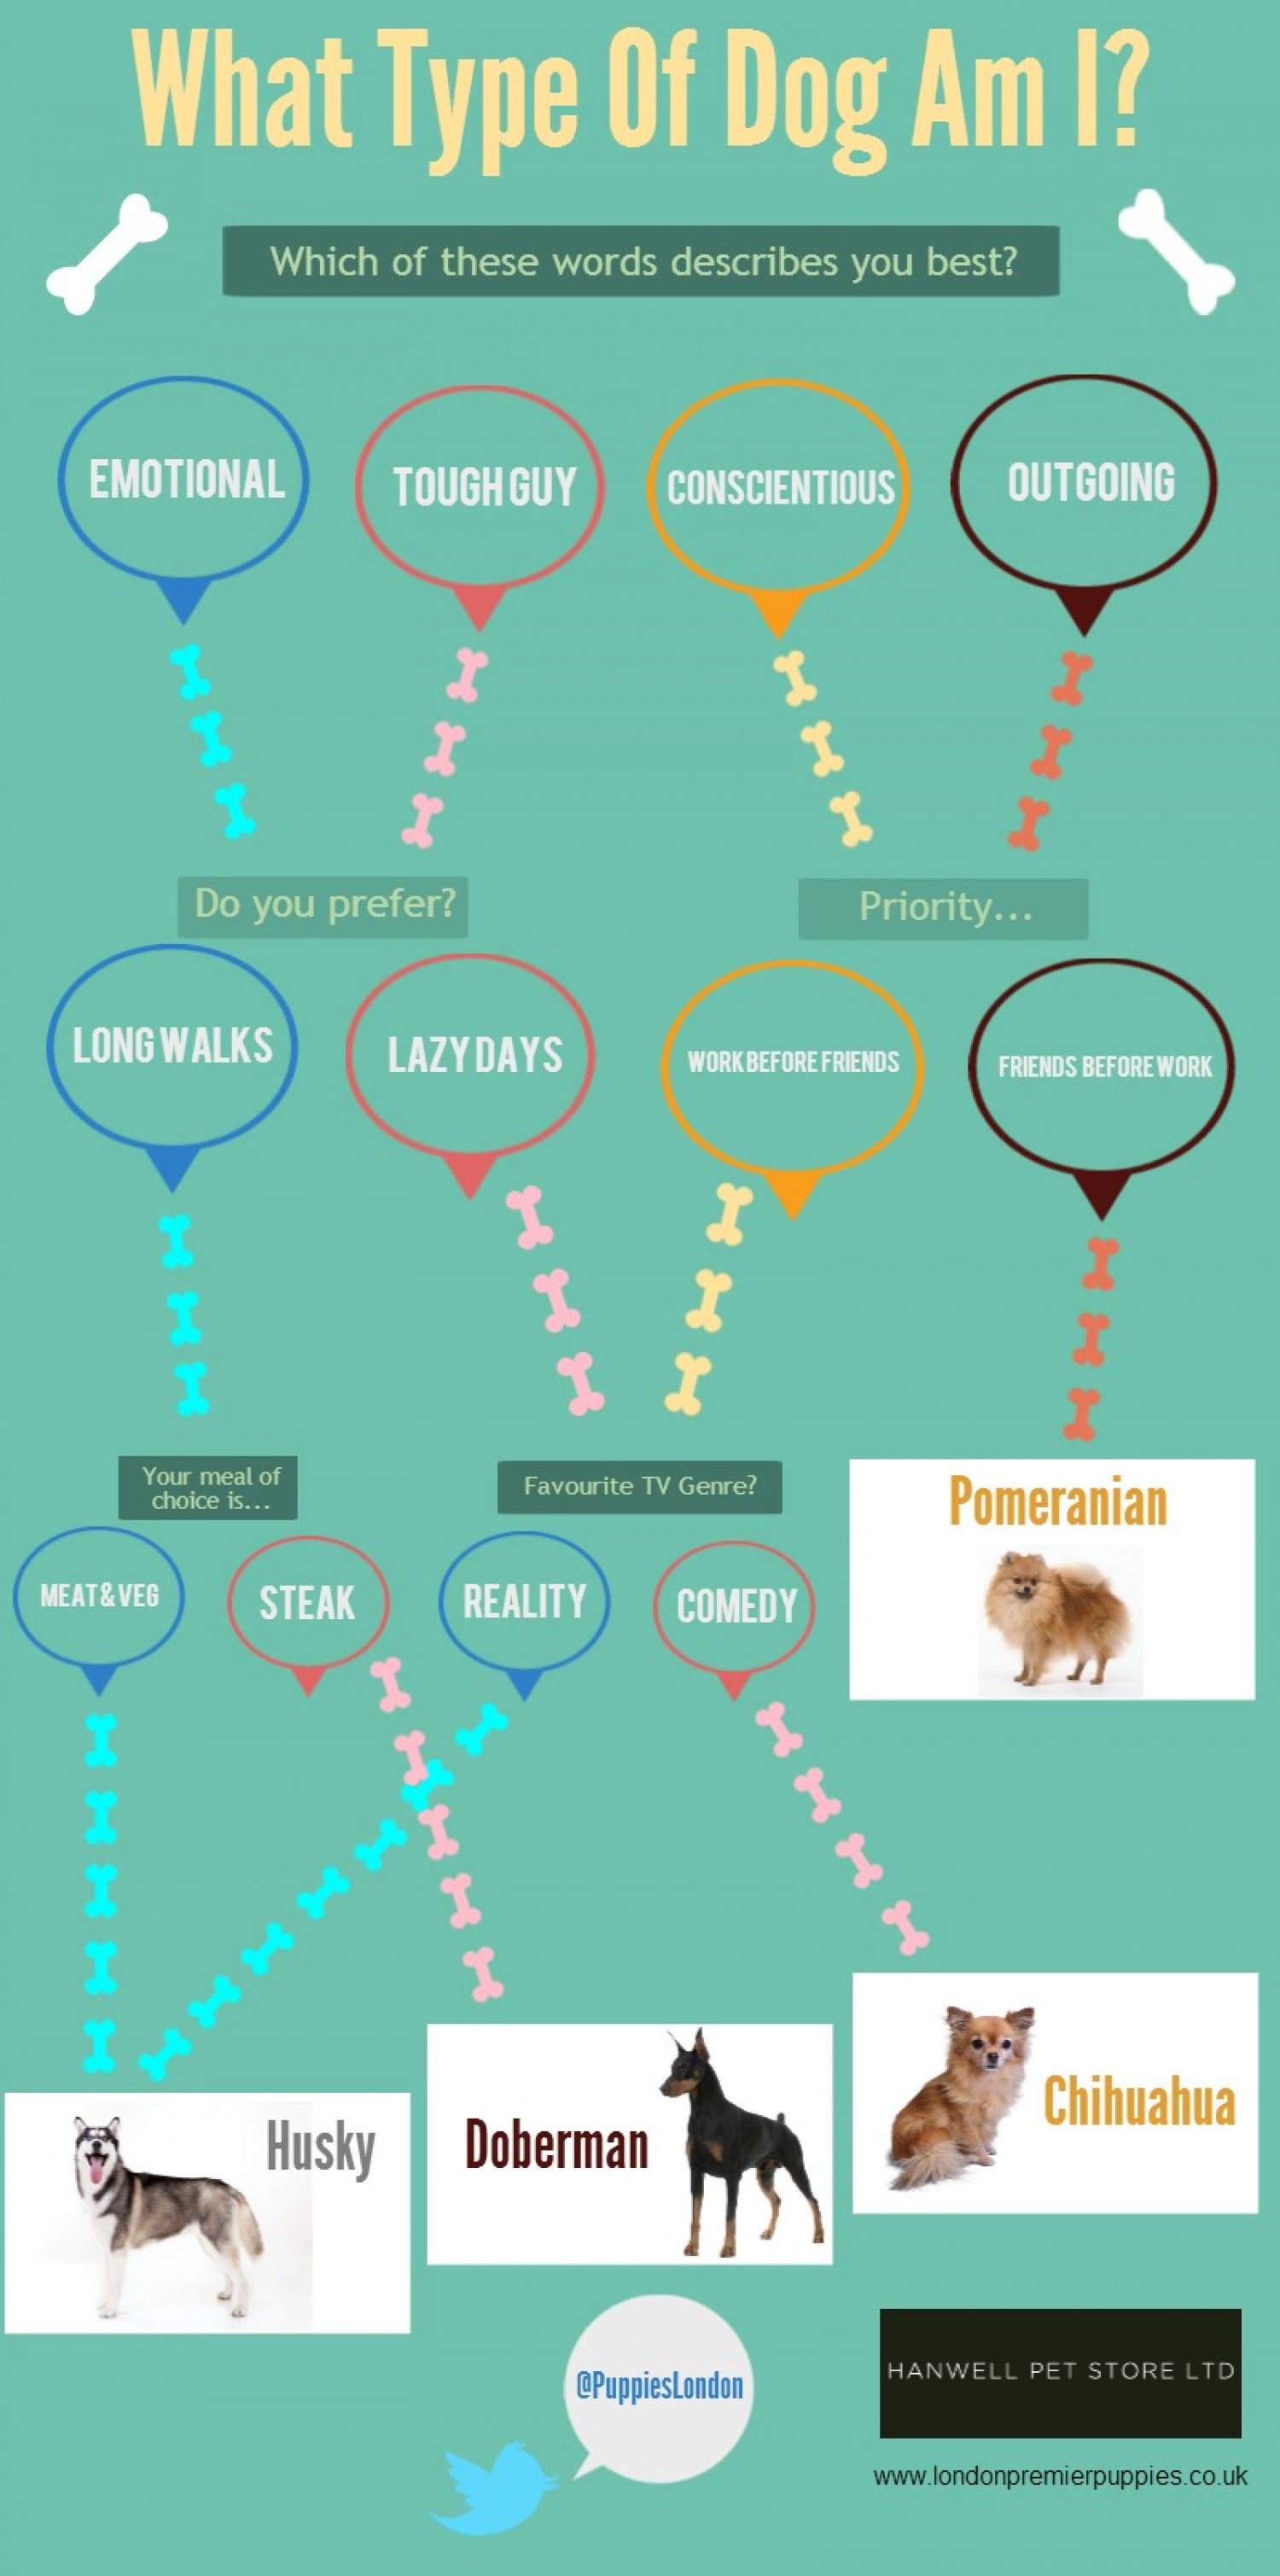 What Type Of Dog Are You? Infographic